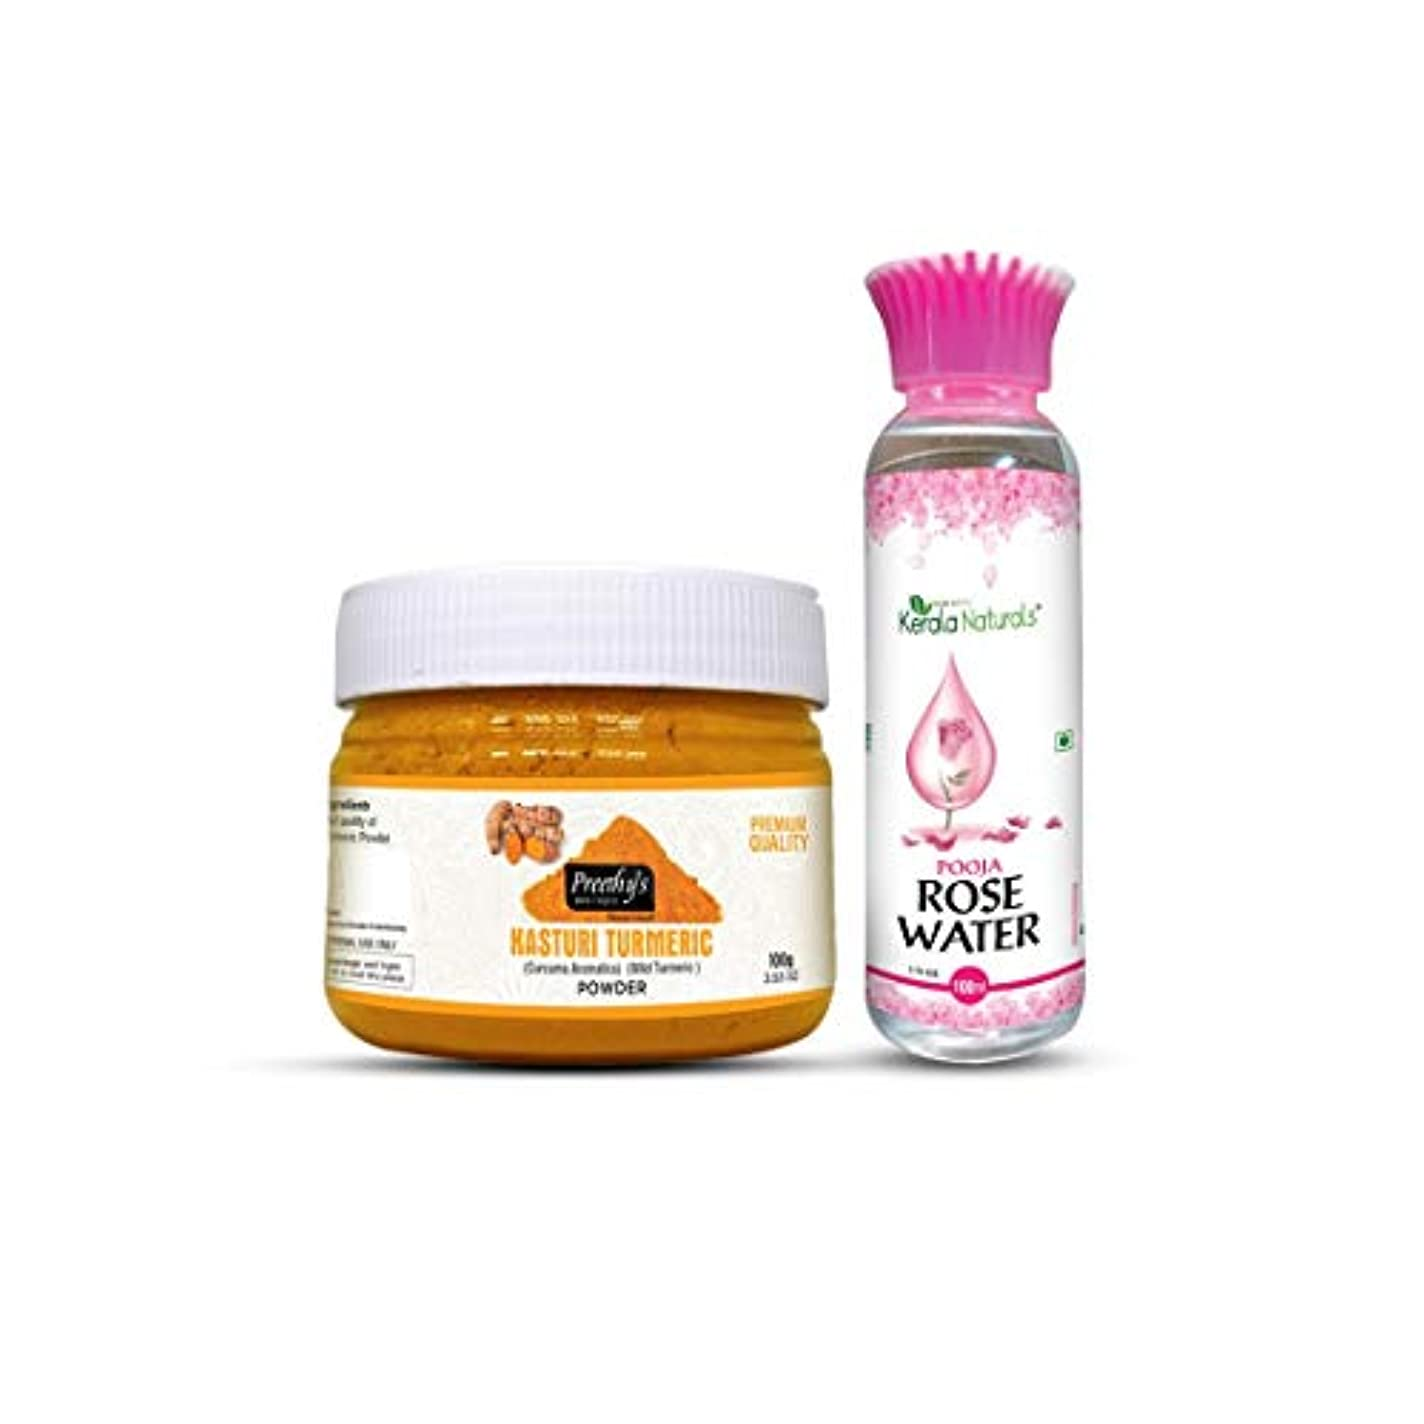 作りますモットーシットコムCombo Offer of Kasturi turmeric powder 100gm and Rose water 100ml - Natural skin care, Clear and Glowing Skin...